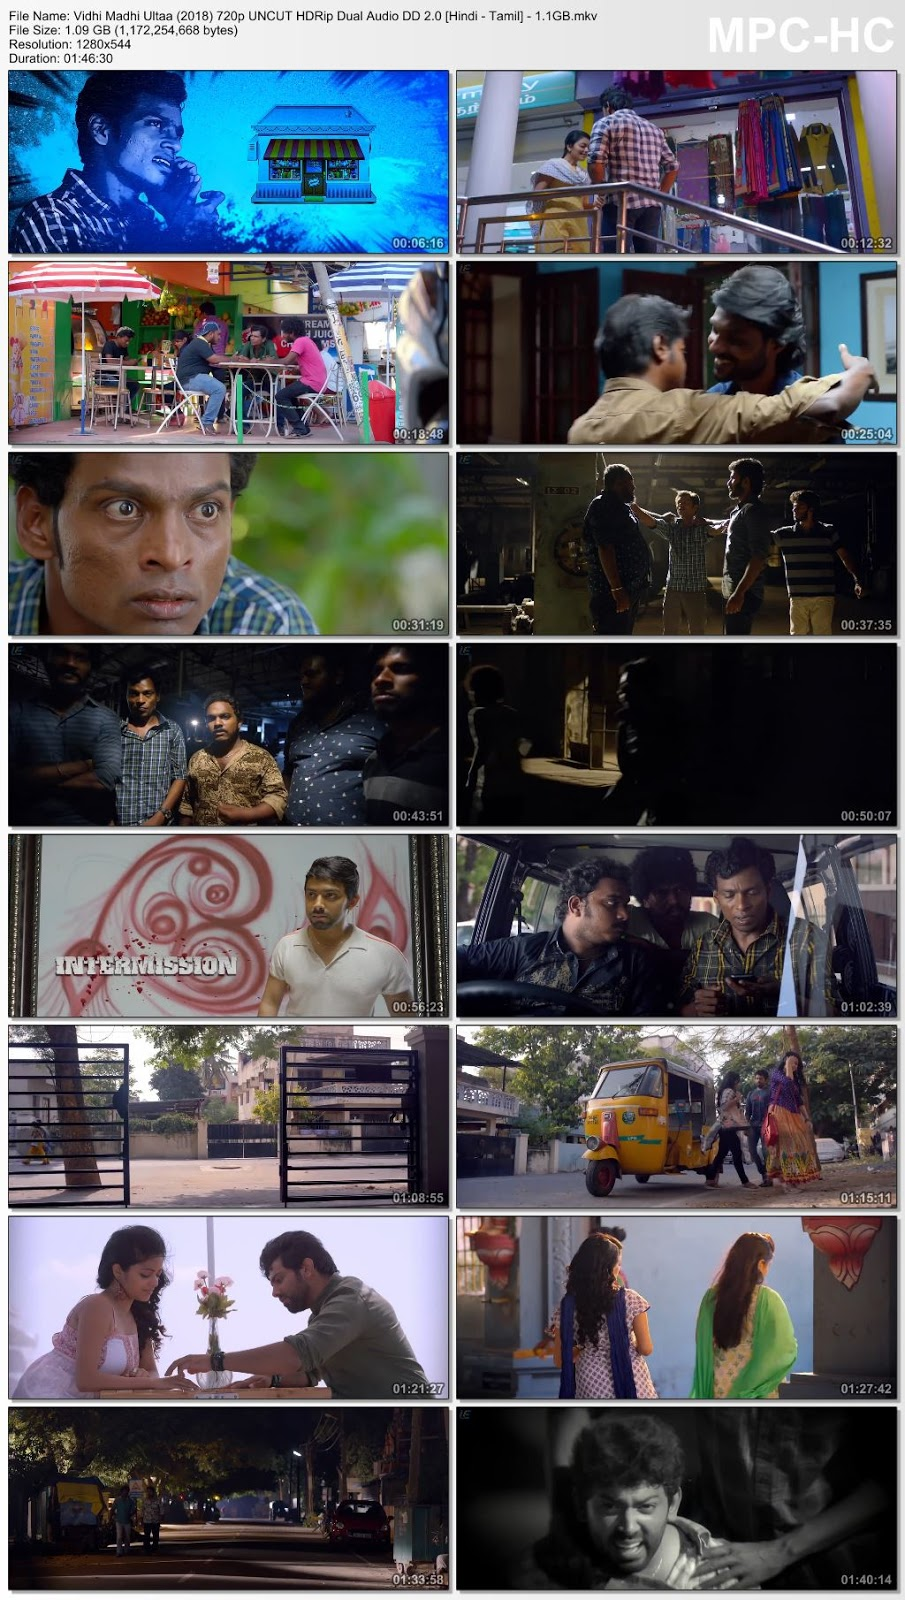 Thugbaaz (Vidhi Madhi Ultaa) (2019) 720p HDRip [Hindi – Tamil] – 1.1GB Desirehub